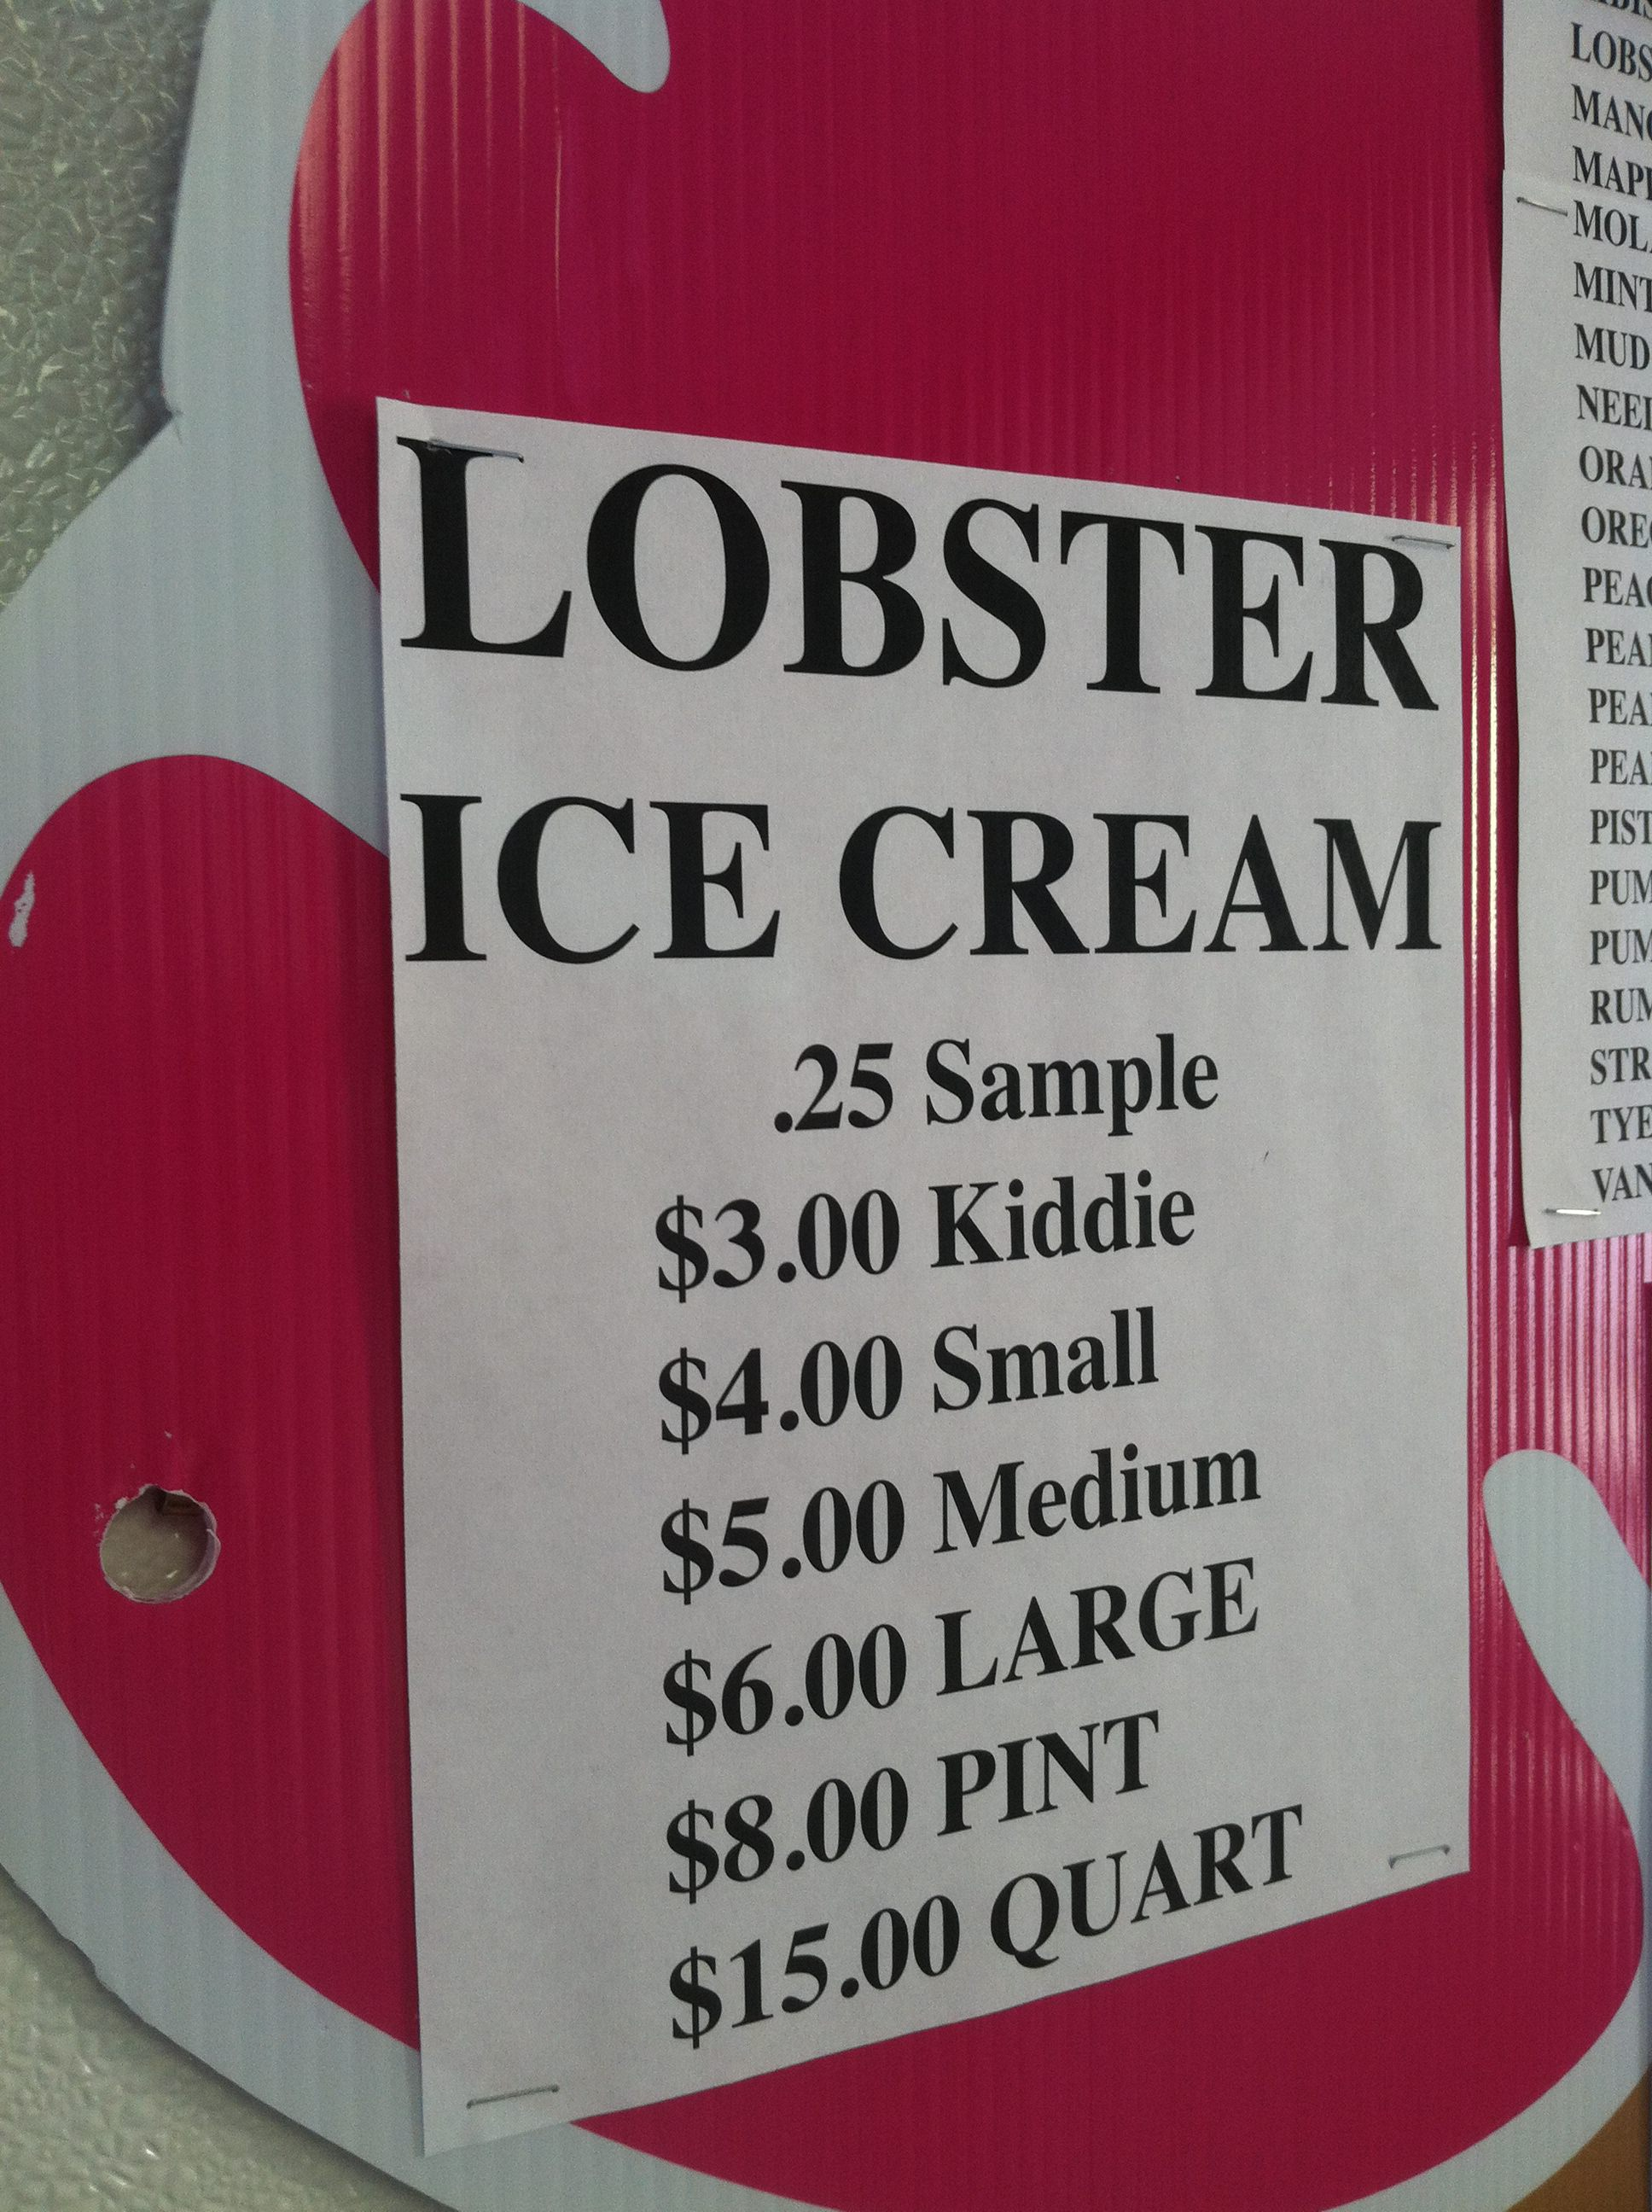 Lobster Ice Cream. No Really. Only in Maine